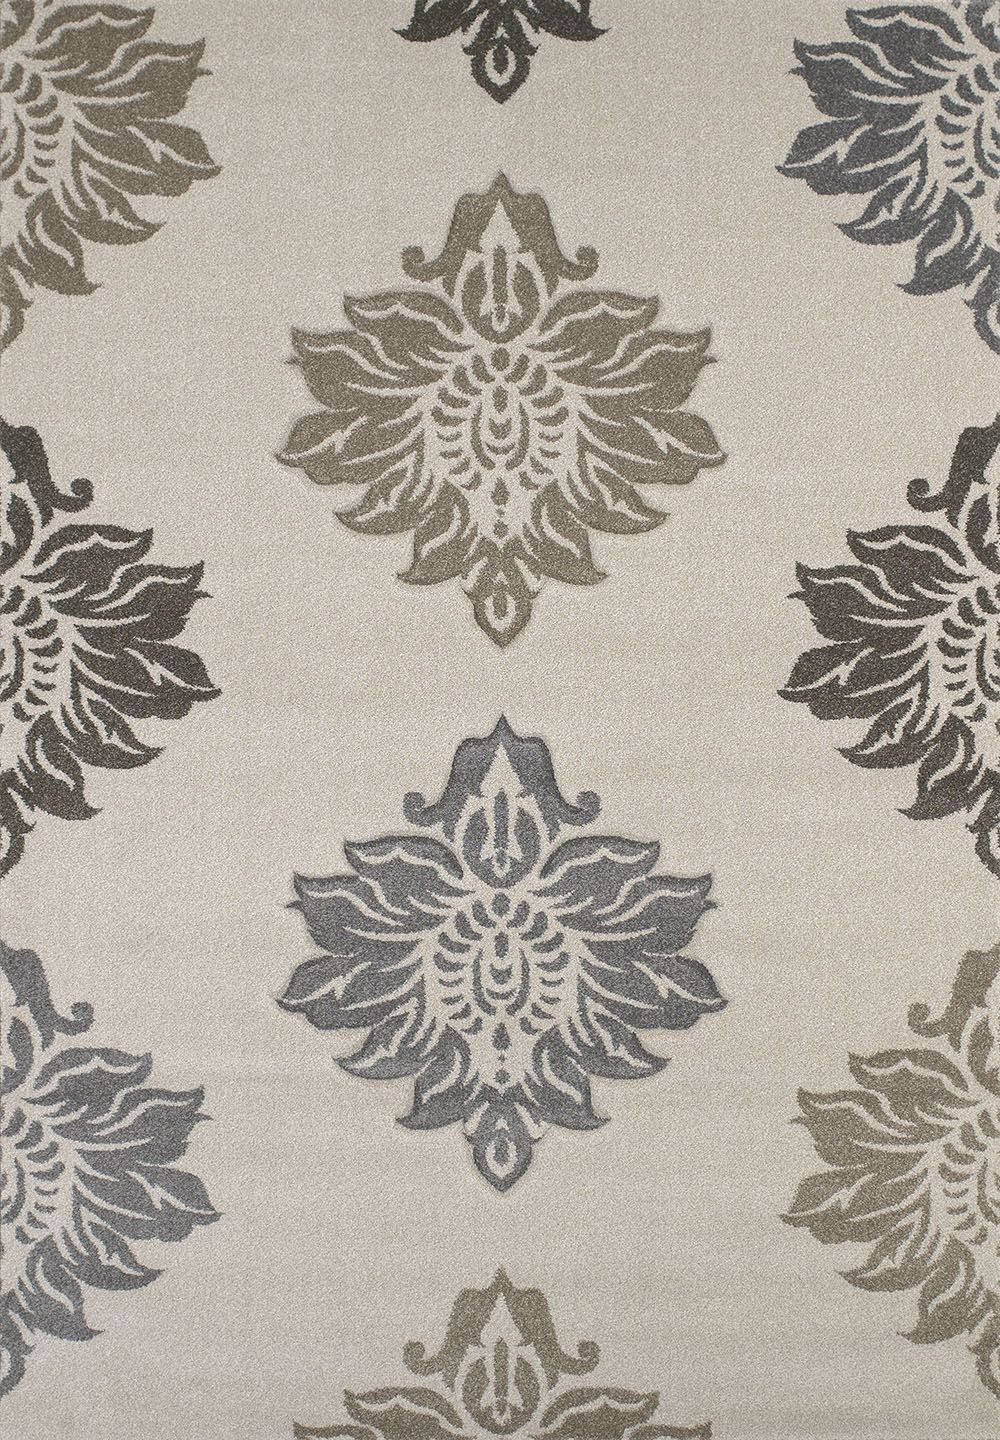 united weavers townshend  souffle country & floral area rug collection